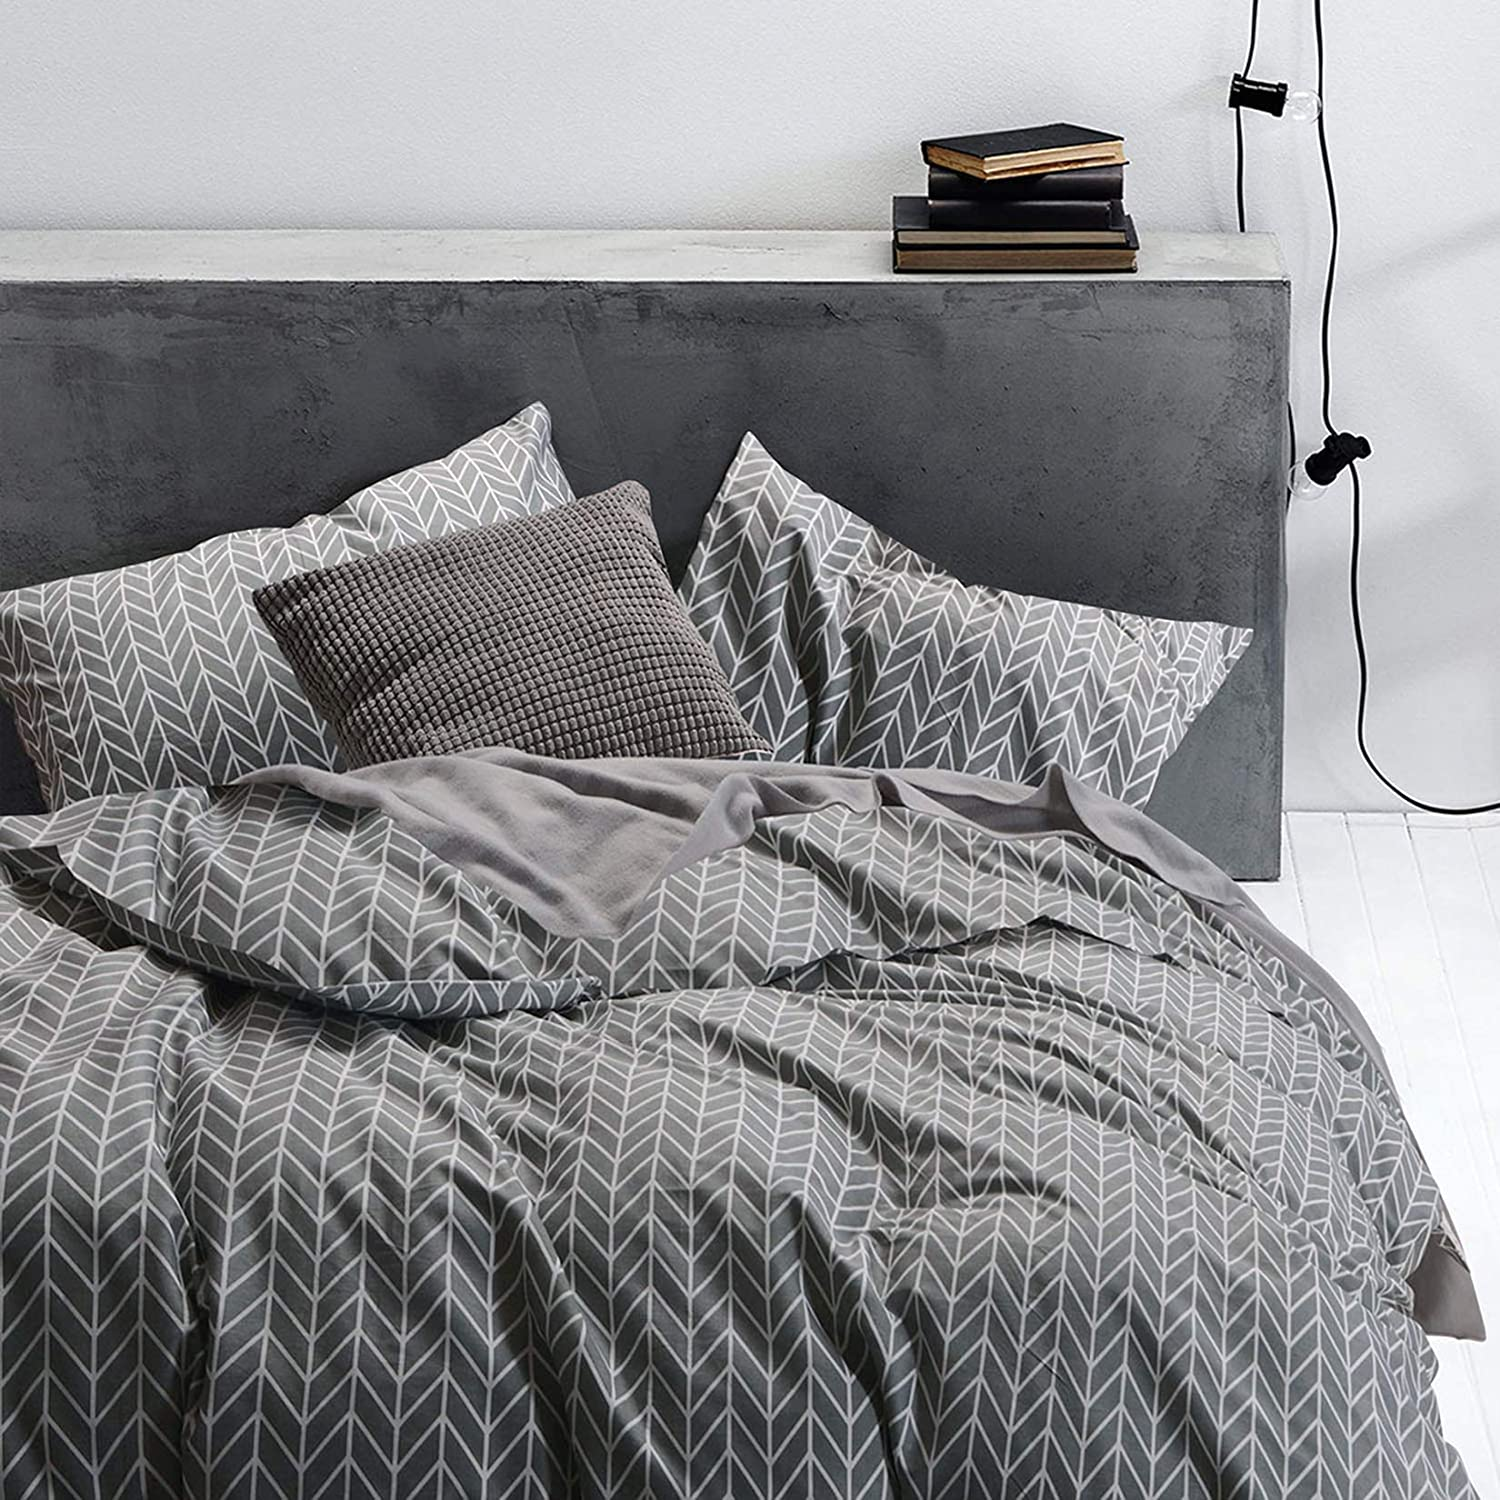 Wake In Cloud - Gray Comforter Set, Chevron Zig Zag Geometric Modern Pattern Printed on Grey, 100% Cotton Fabric with Soft Microfiber Inner Fill Bedding